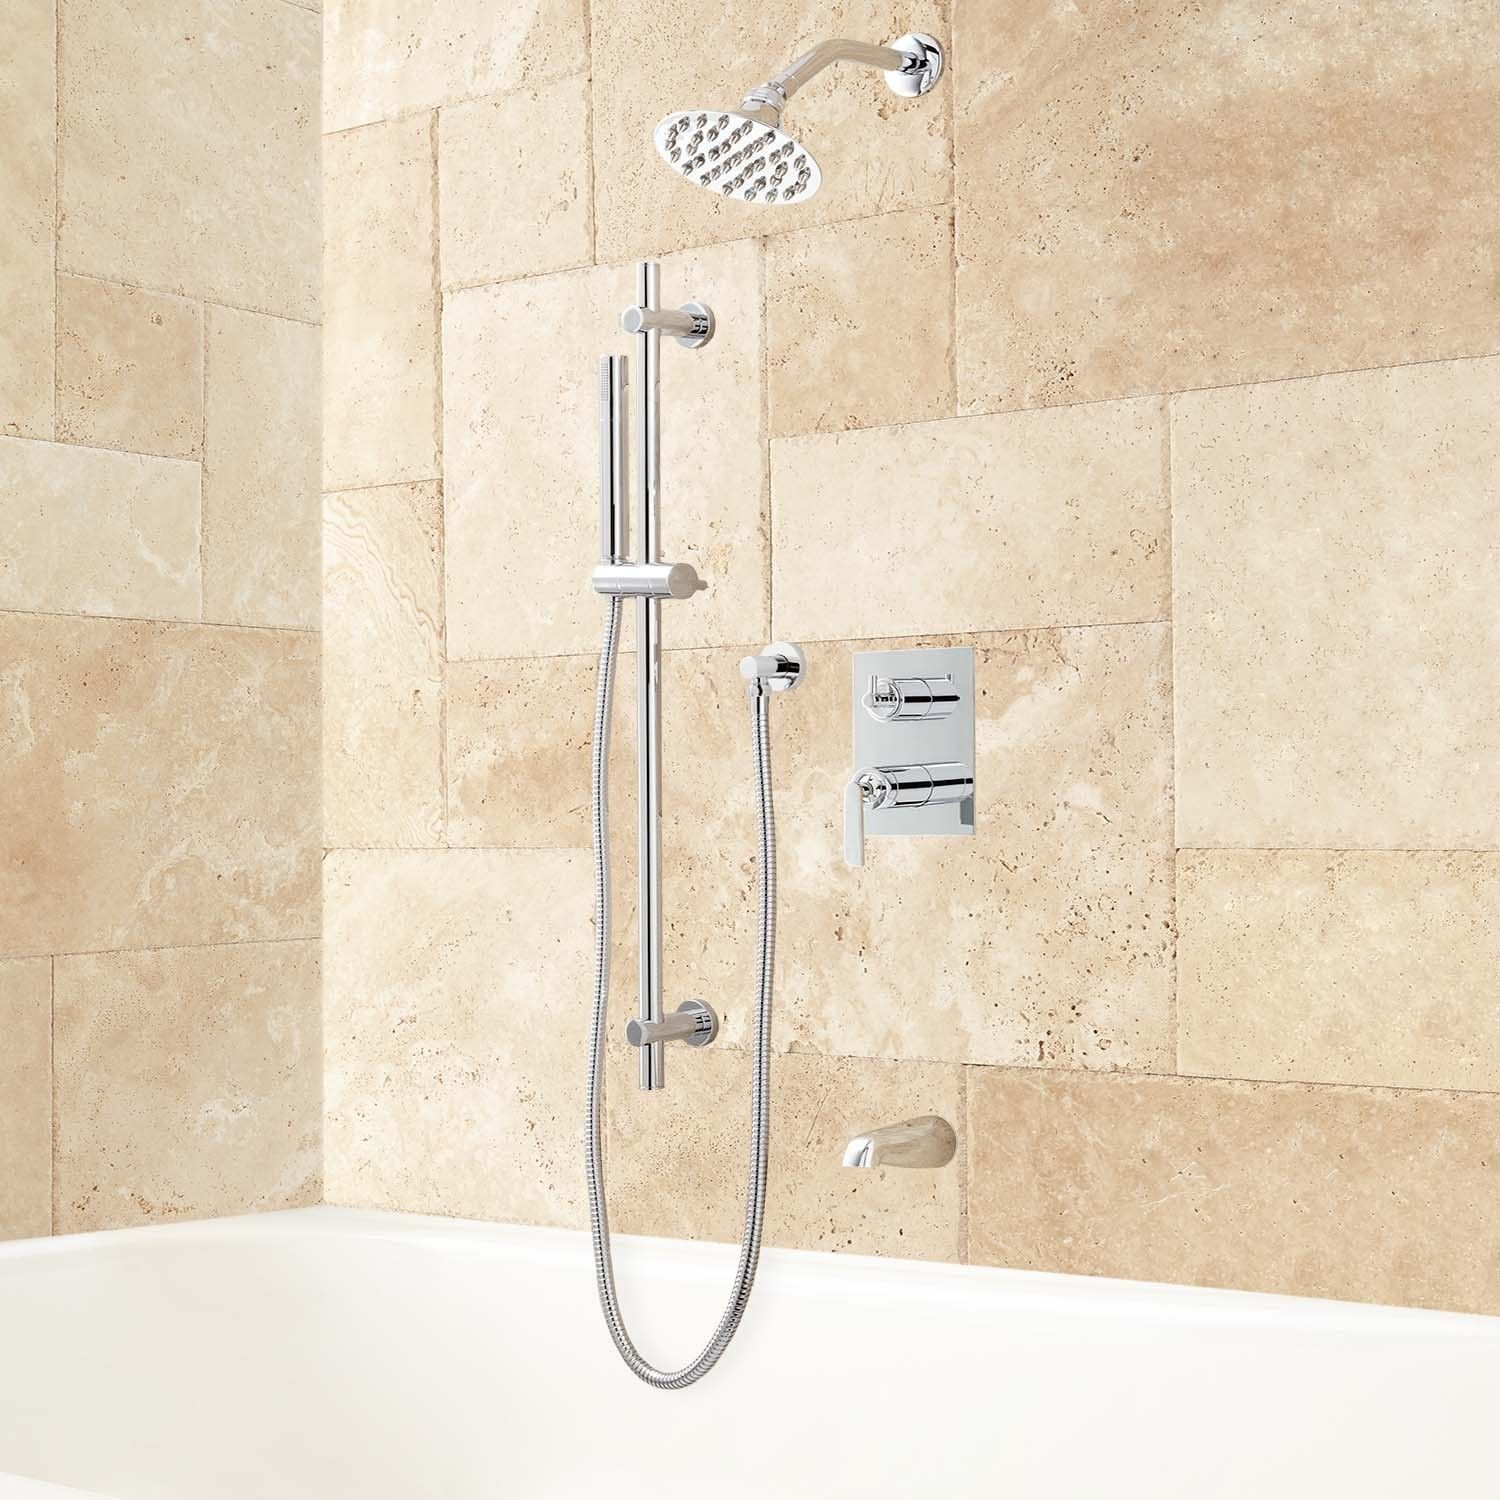 size designing steam the systems impressive units of bathroom images modern inc full to ideas secret shower residential